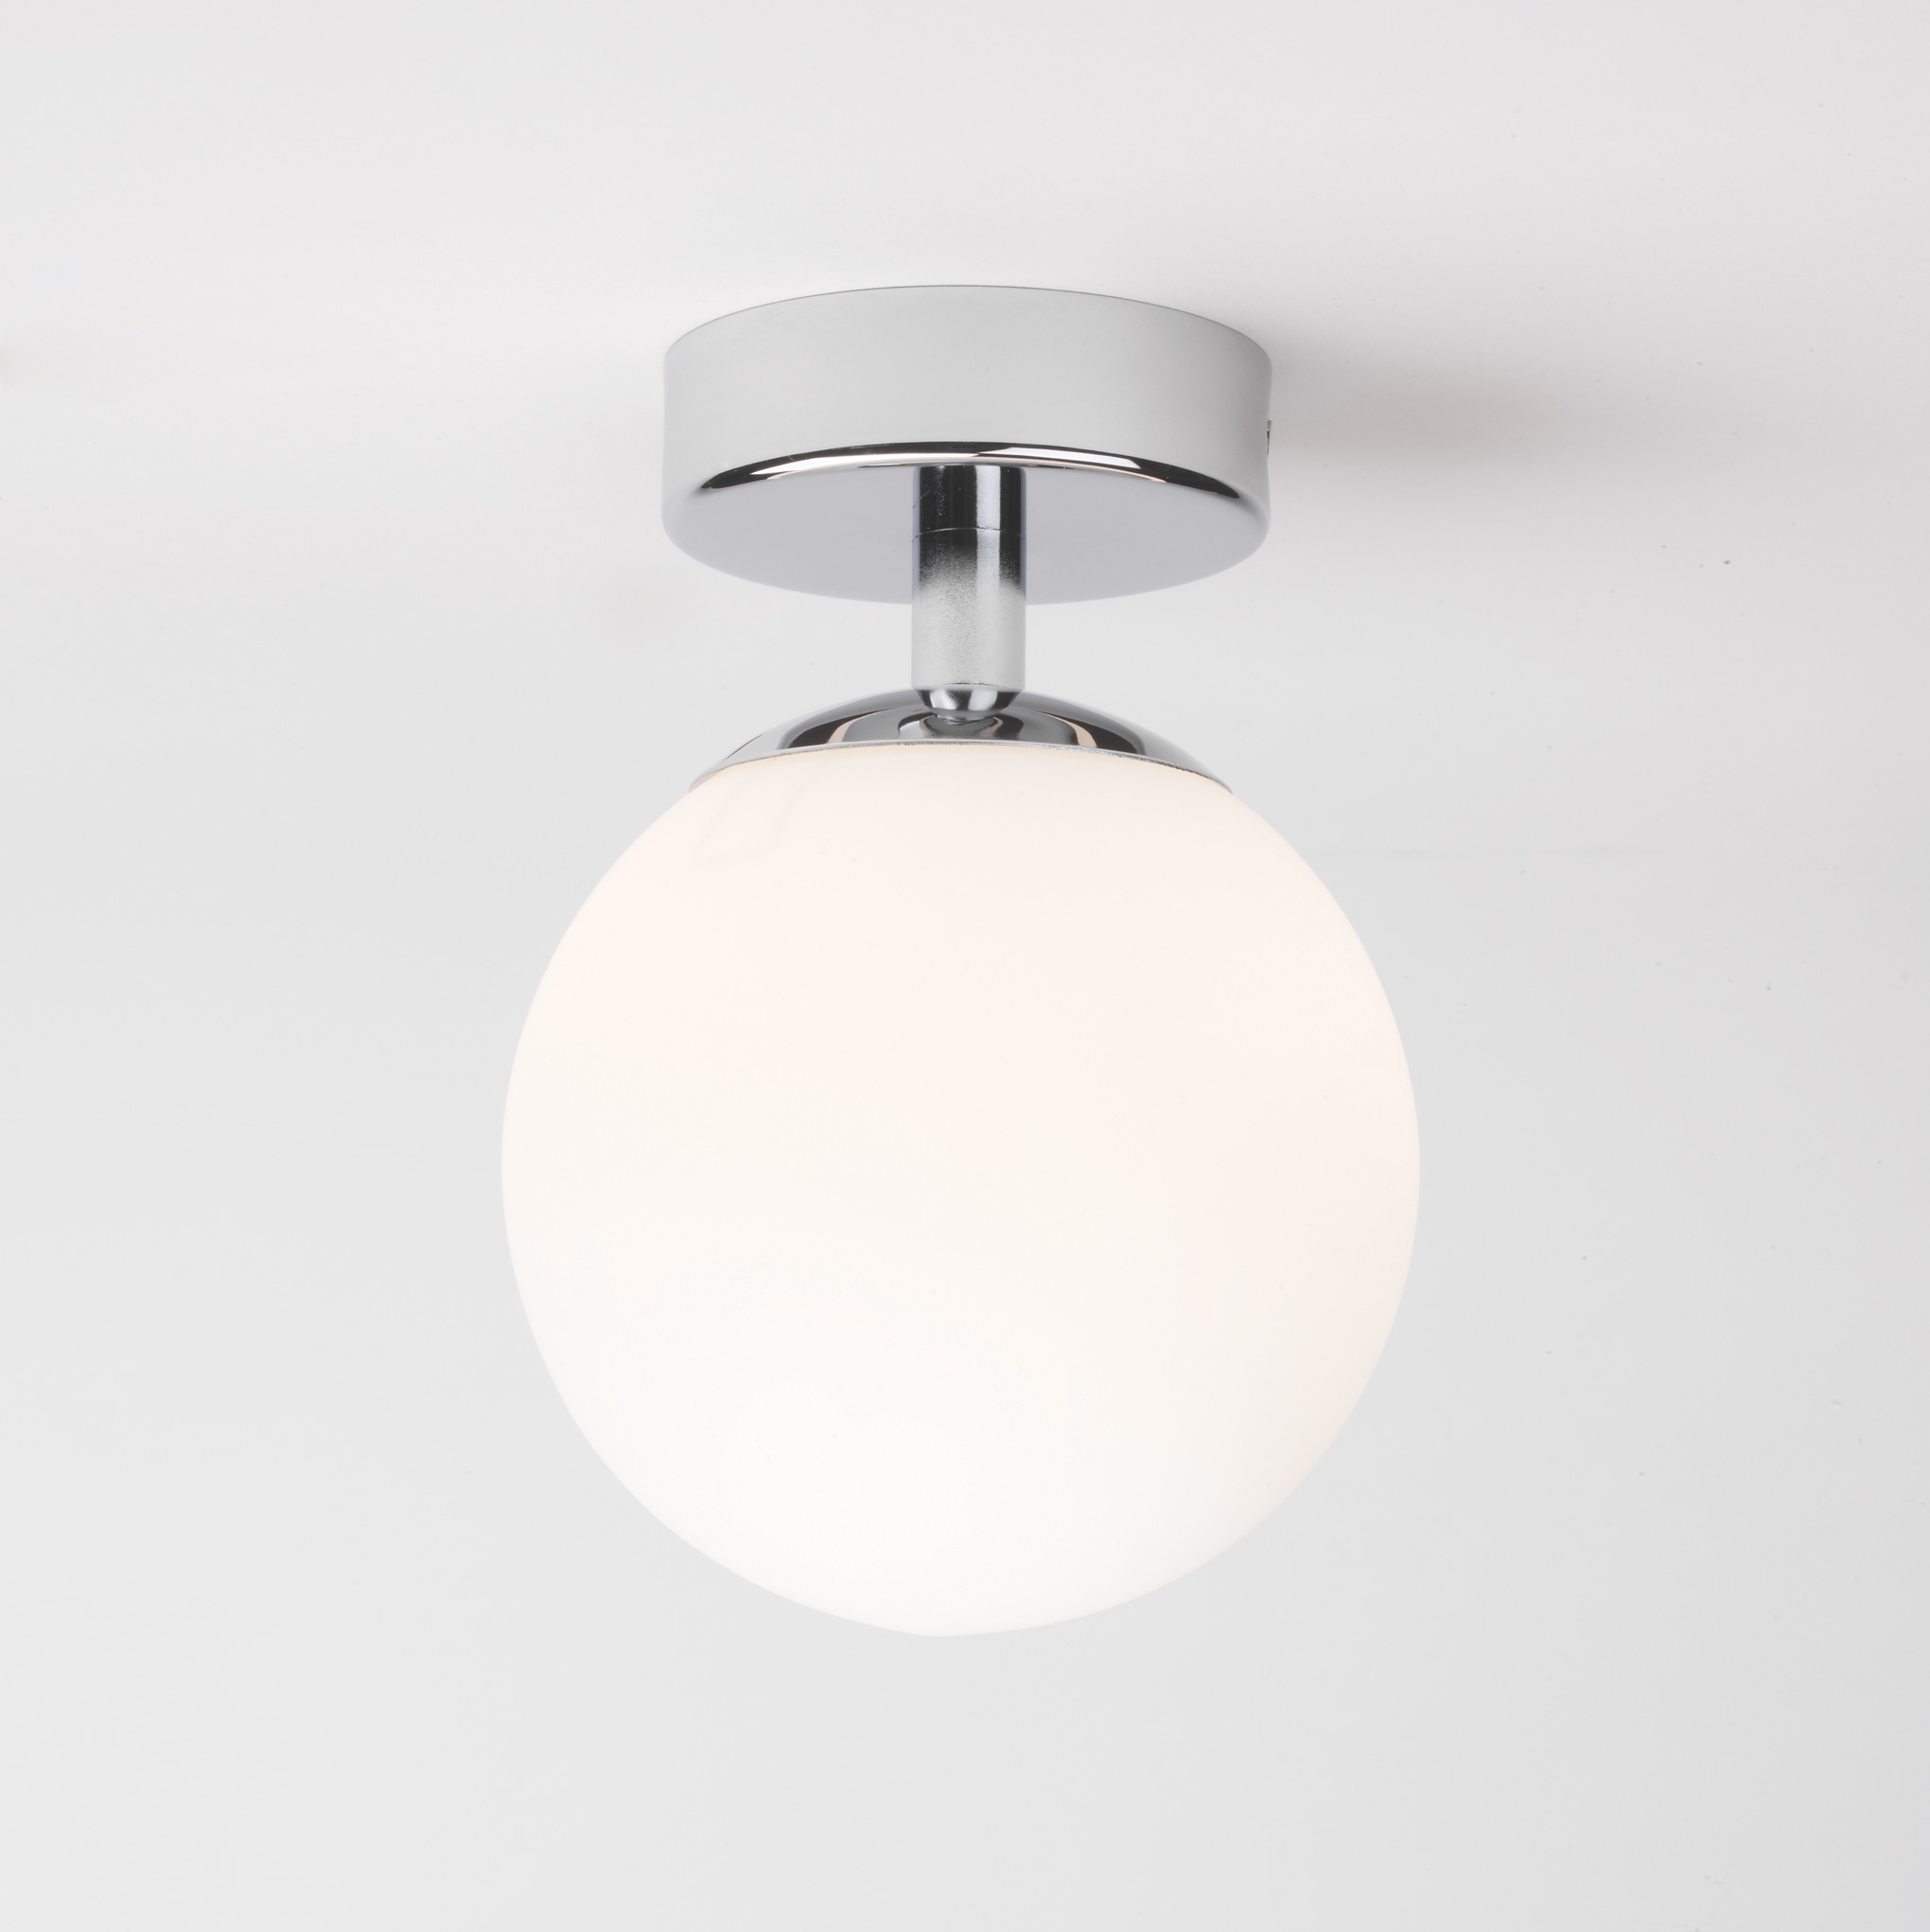 Sentinel Astro Denver 0323 Bathroom Glass Small Globe Ceiling Light Chrome 40w G9